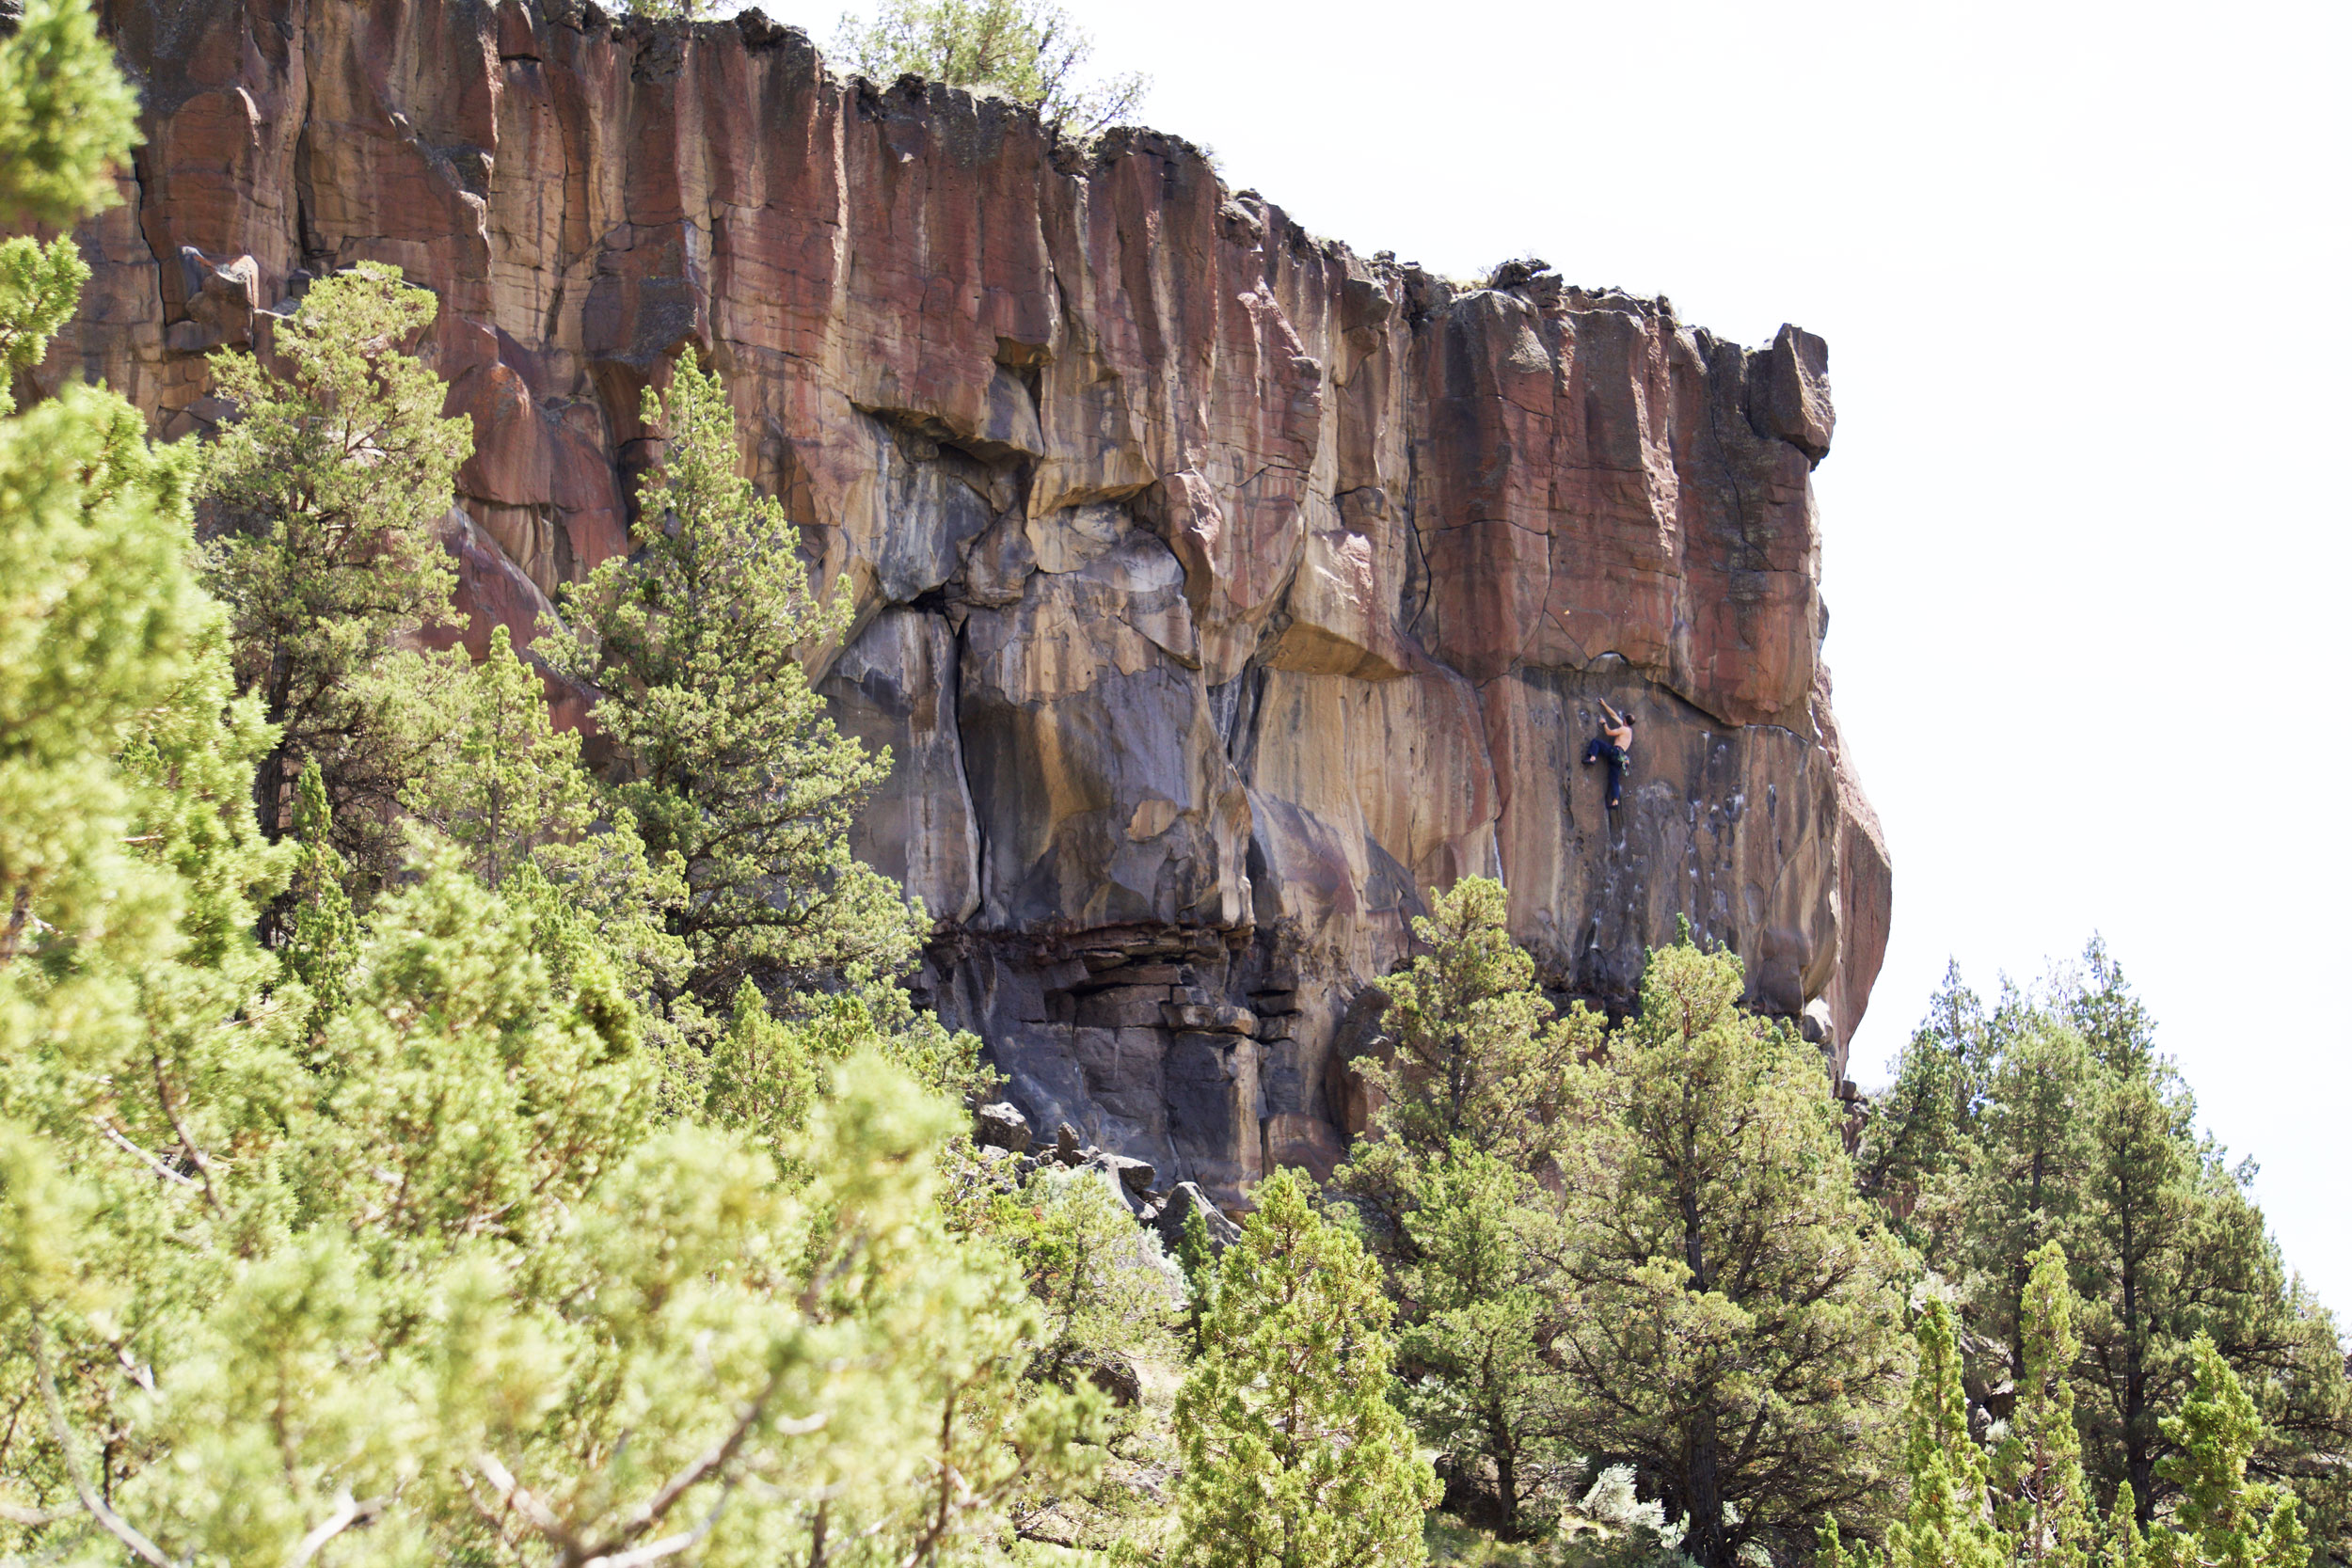 climber on the Reproductive Wall of the Student Wall in The Gorge of Smith Rock State Park